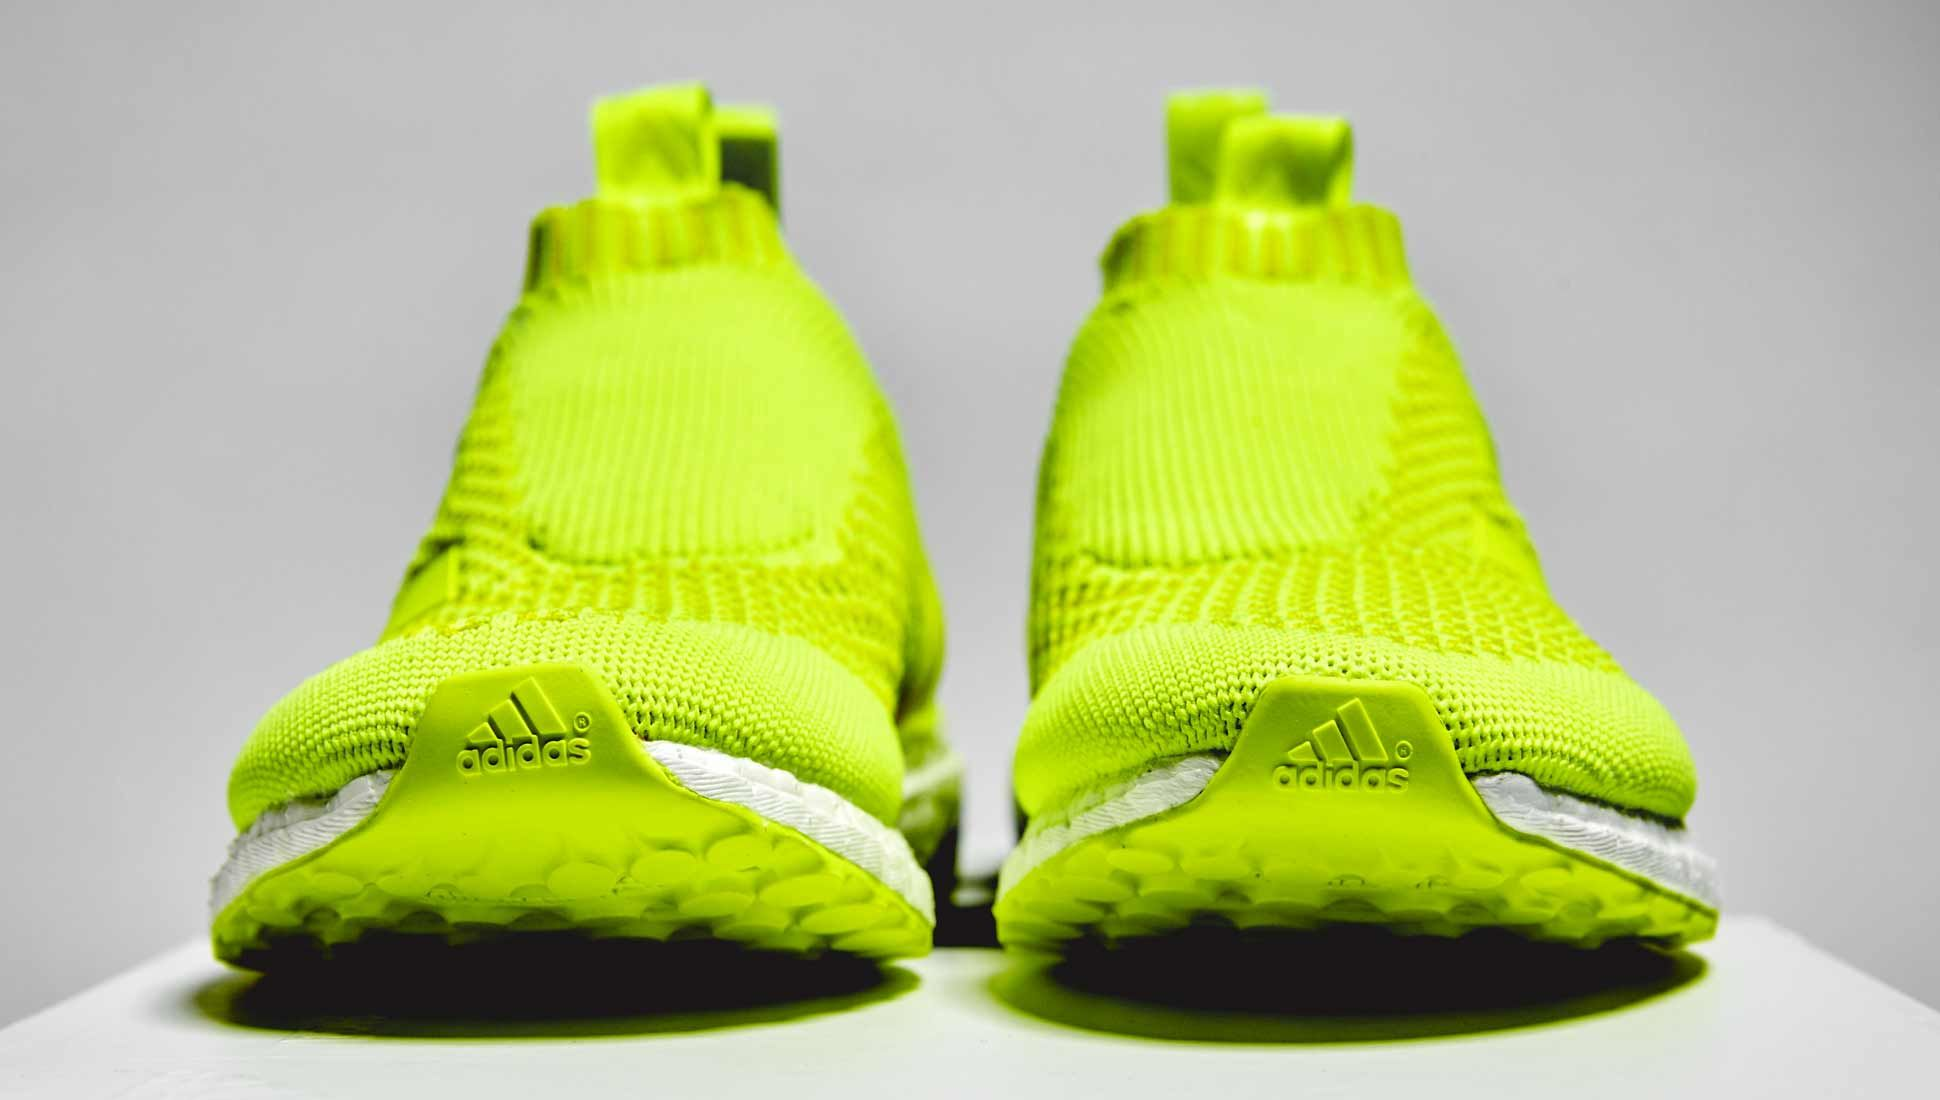 A Closer Look at the adidas ACE 16+ Purecontrol Ultra Boost